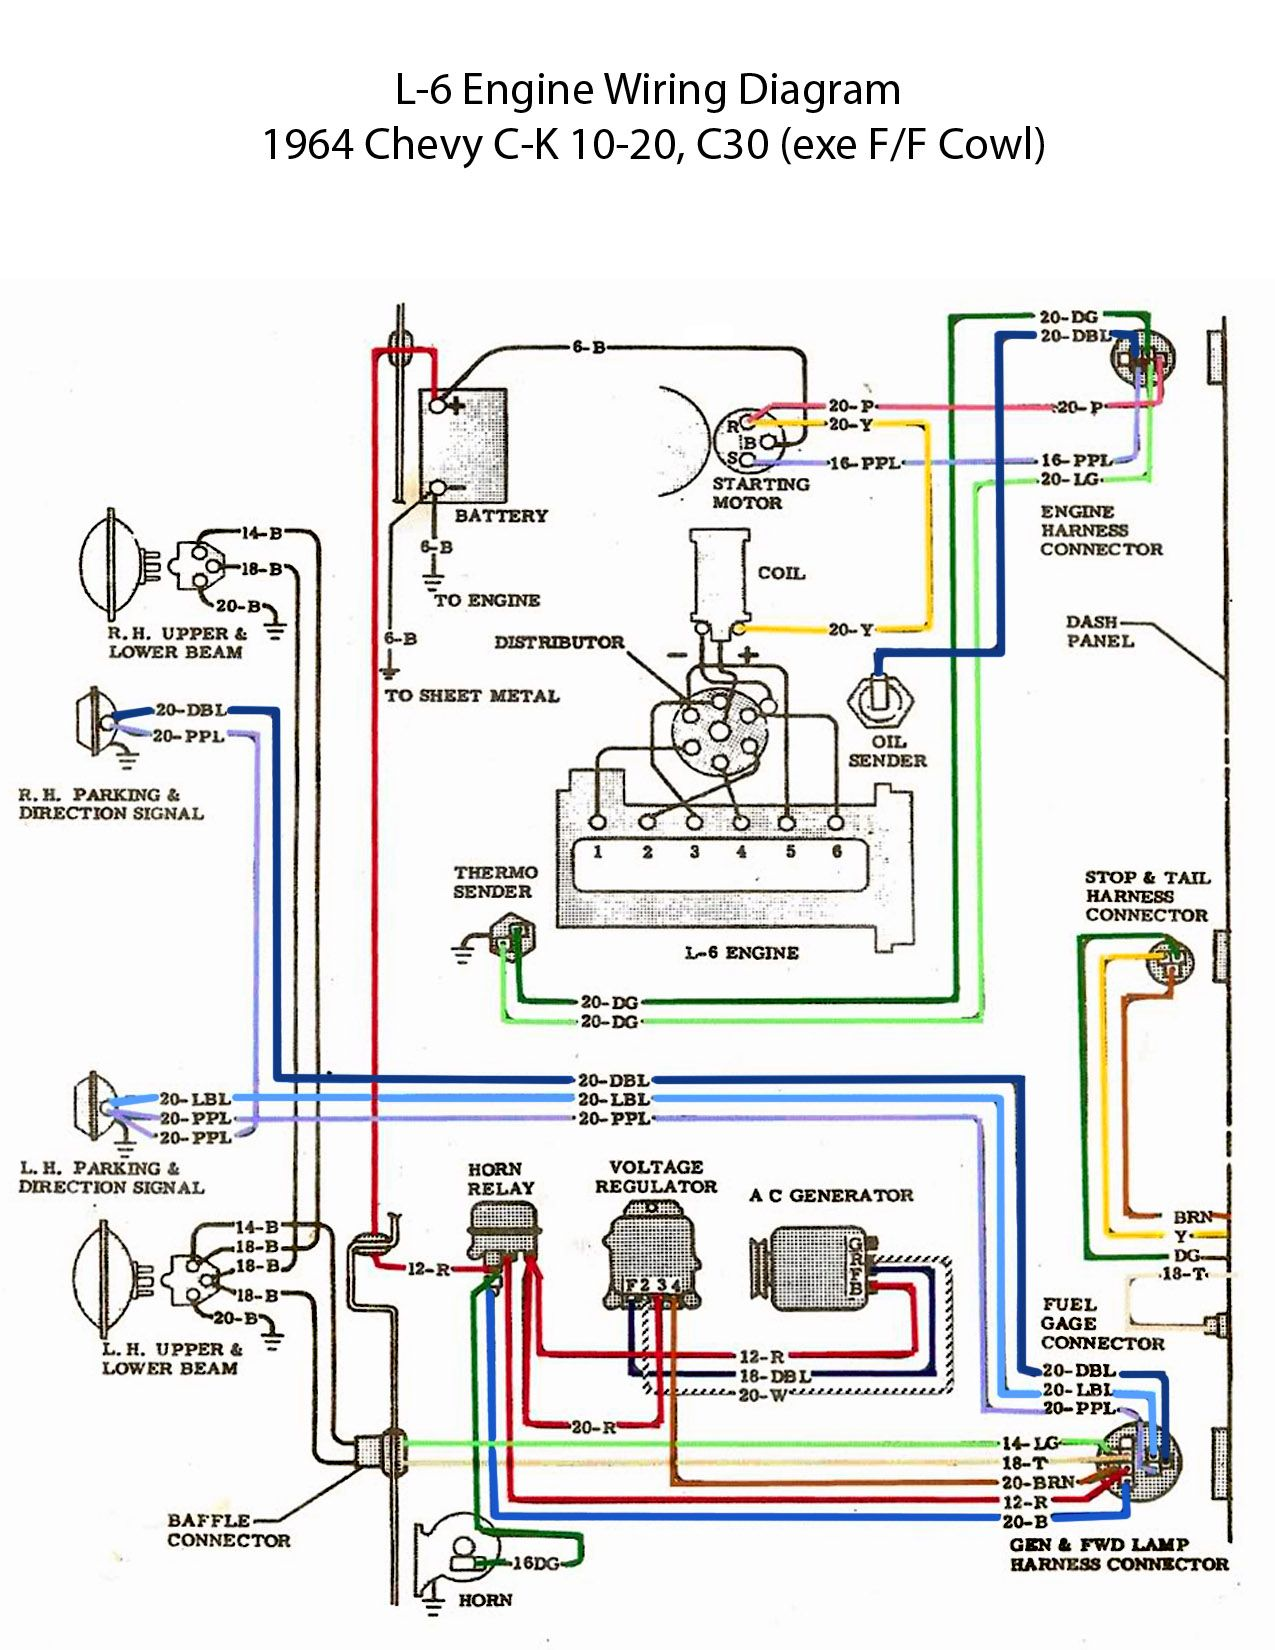 ELECTRIC: L6 Engine Wiring Diagram | '60s Chevy C10